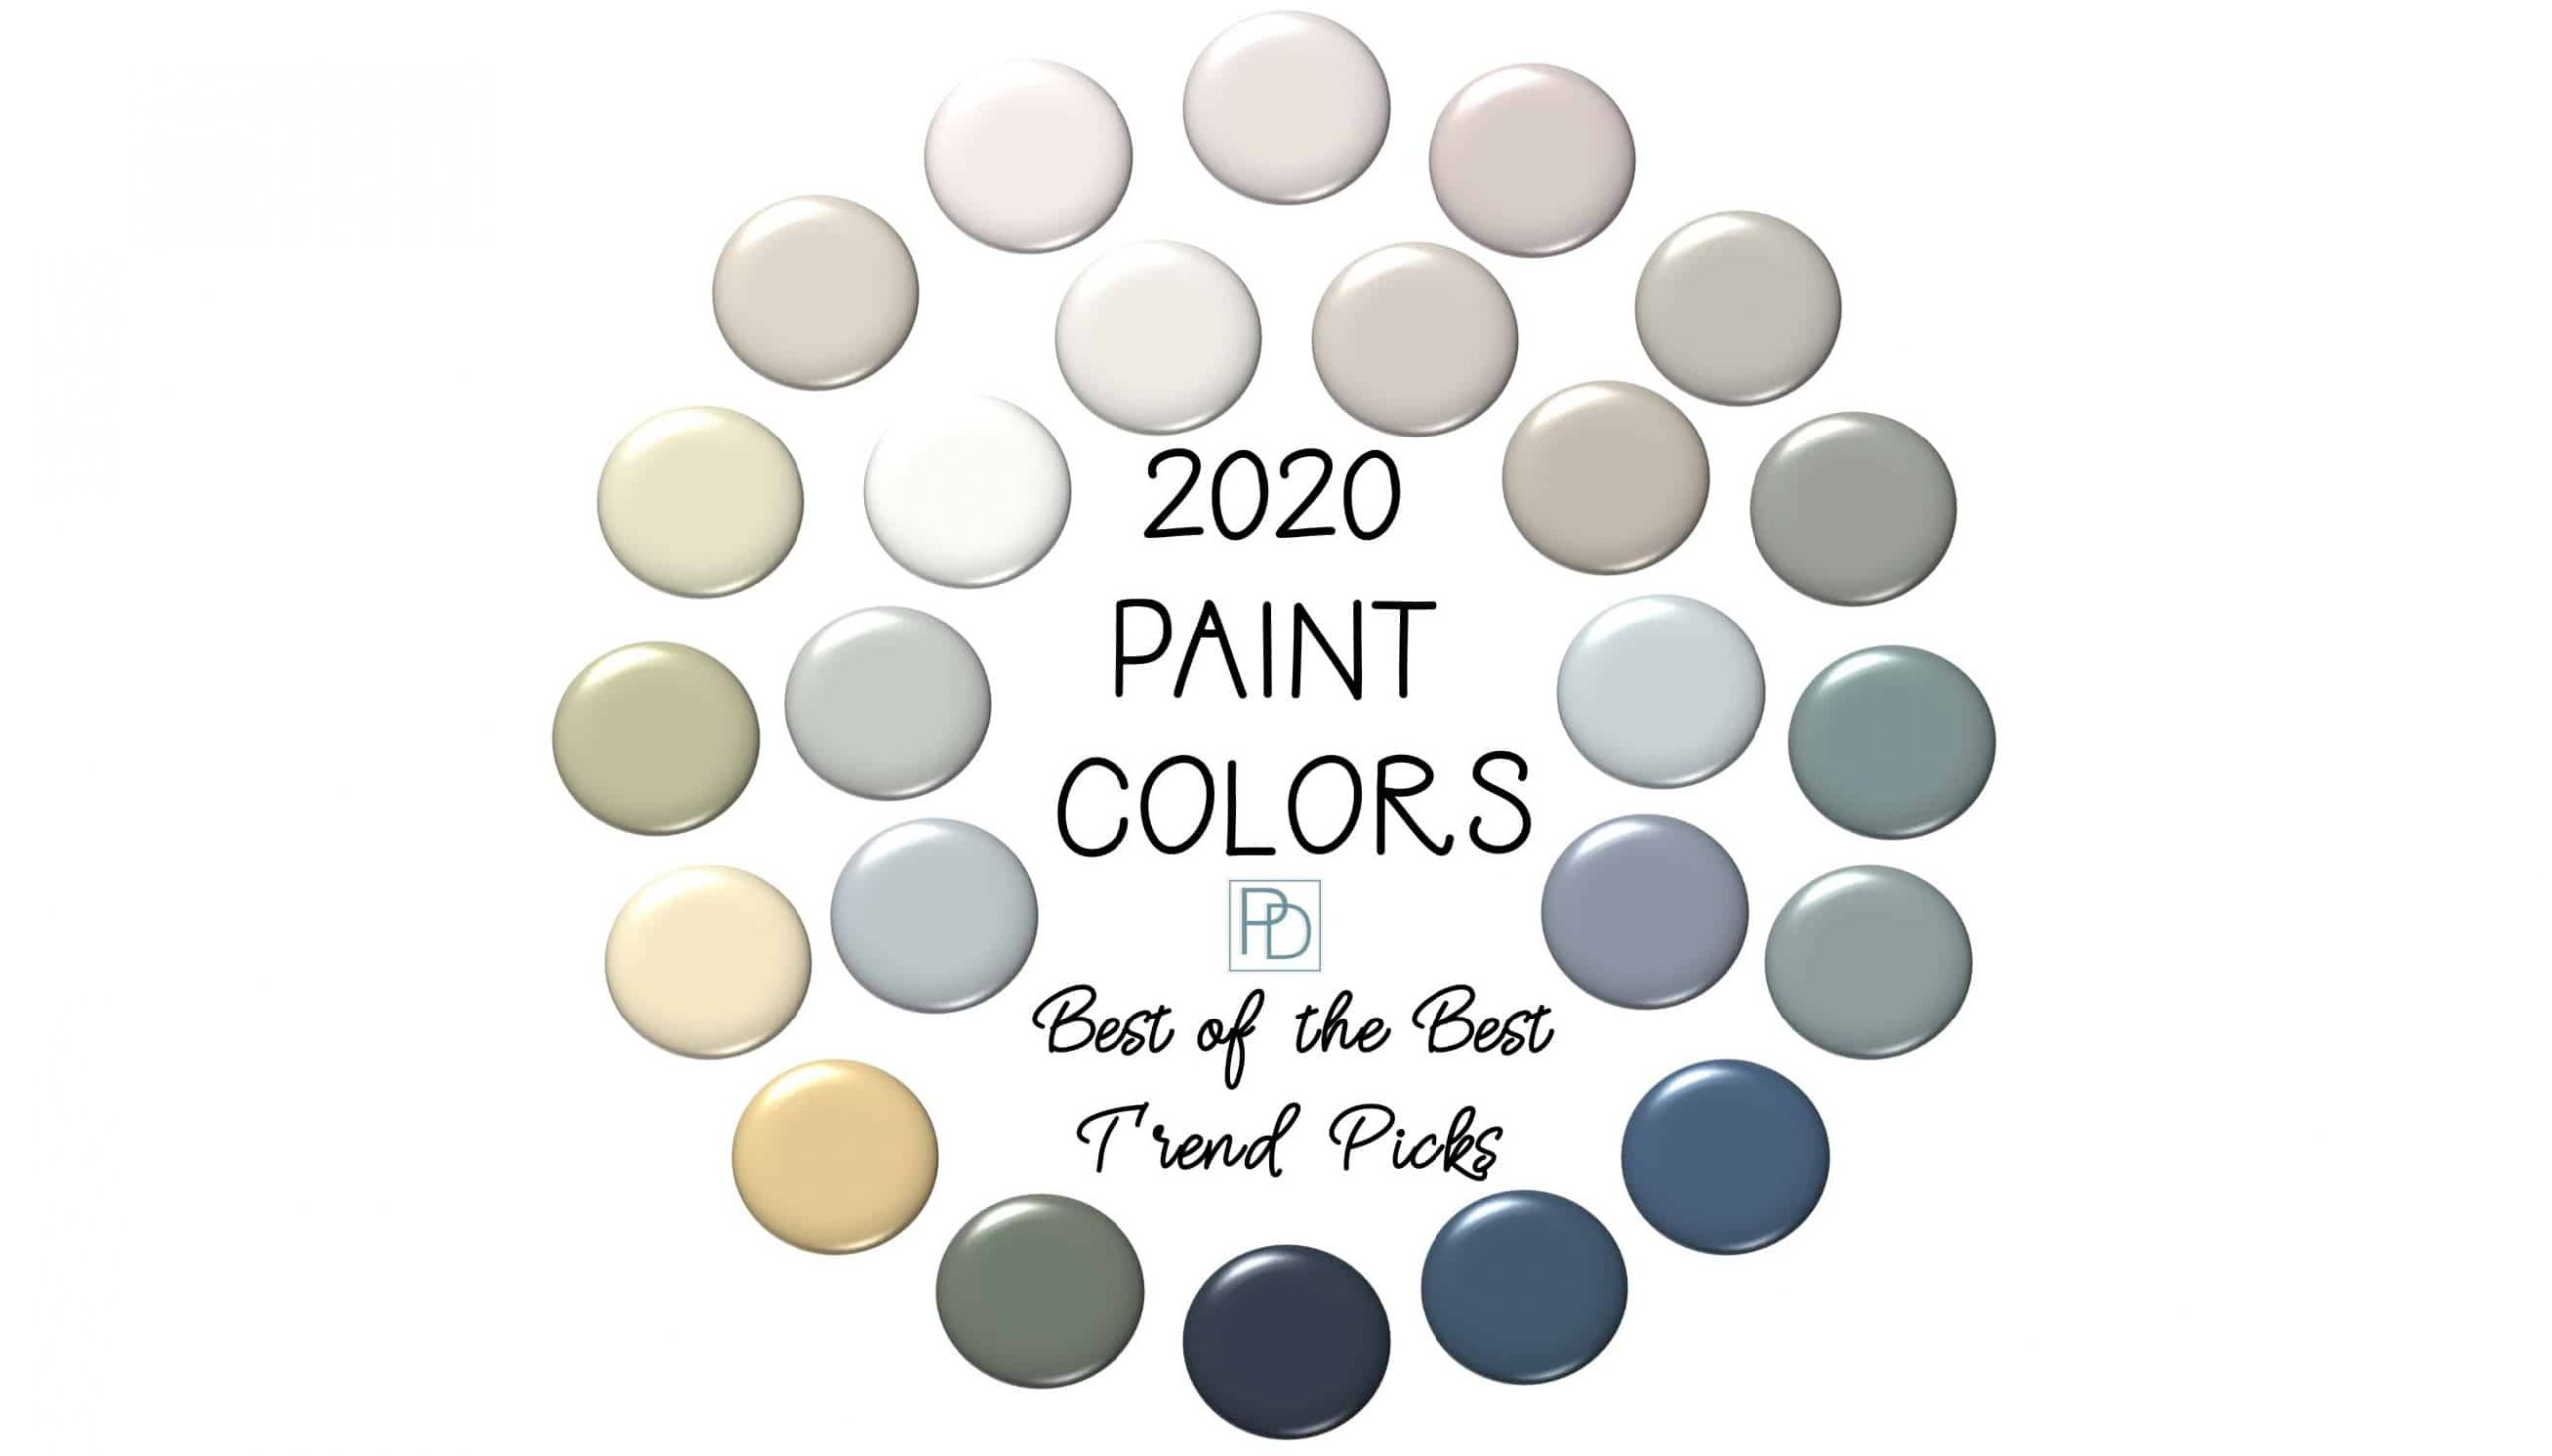 2020 Paint Color Trends 24 Best Of The Best Picks Porch Daydreamer